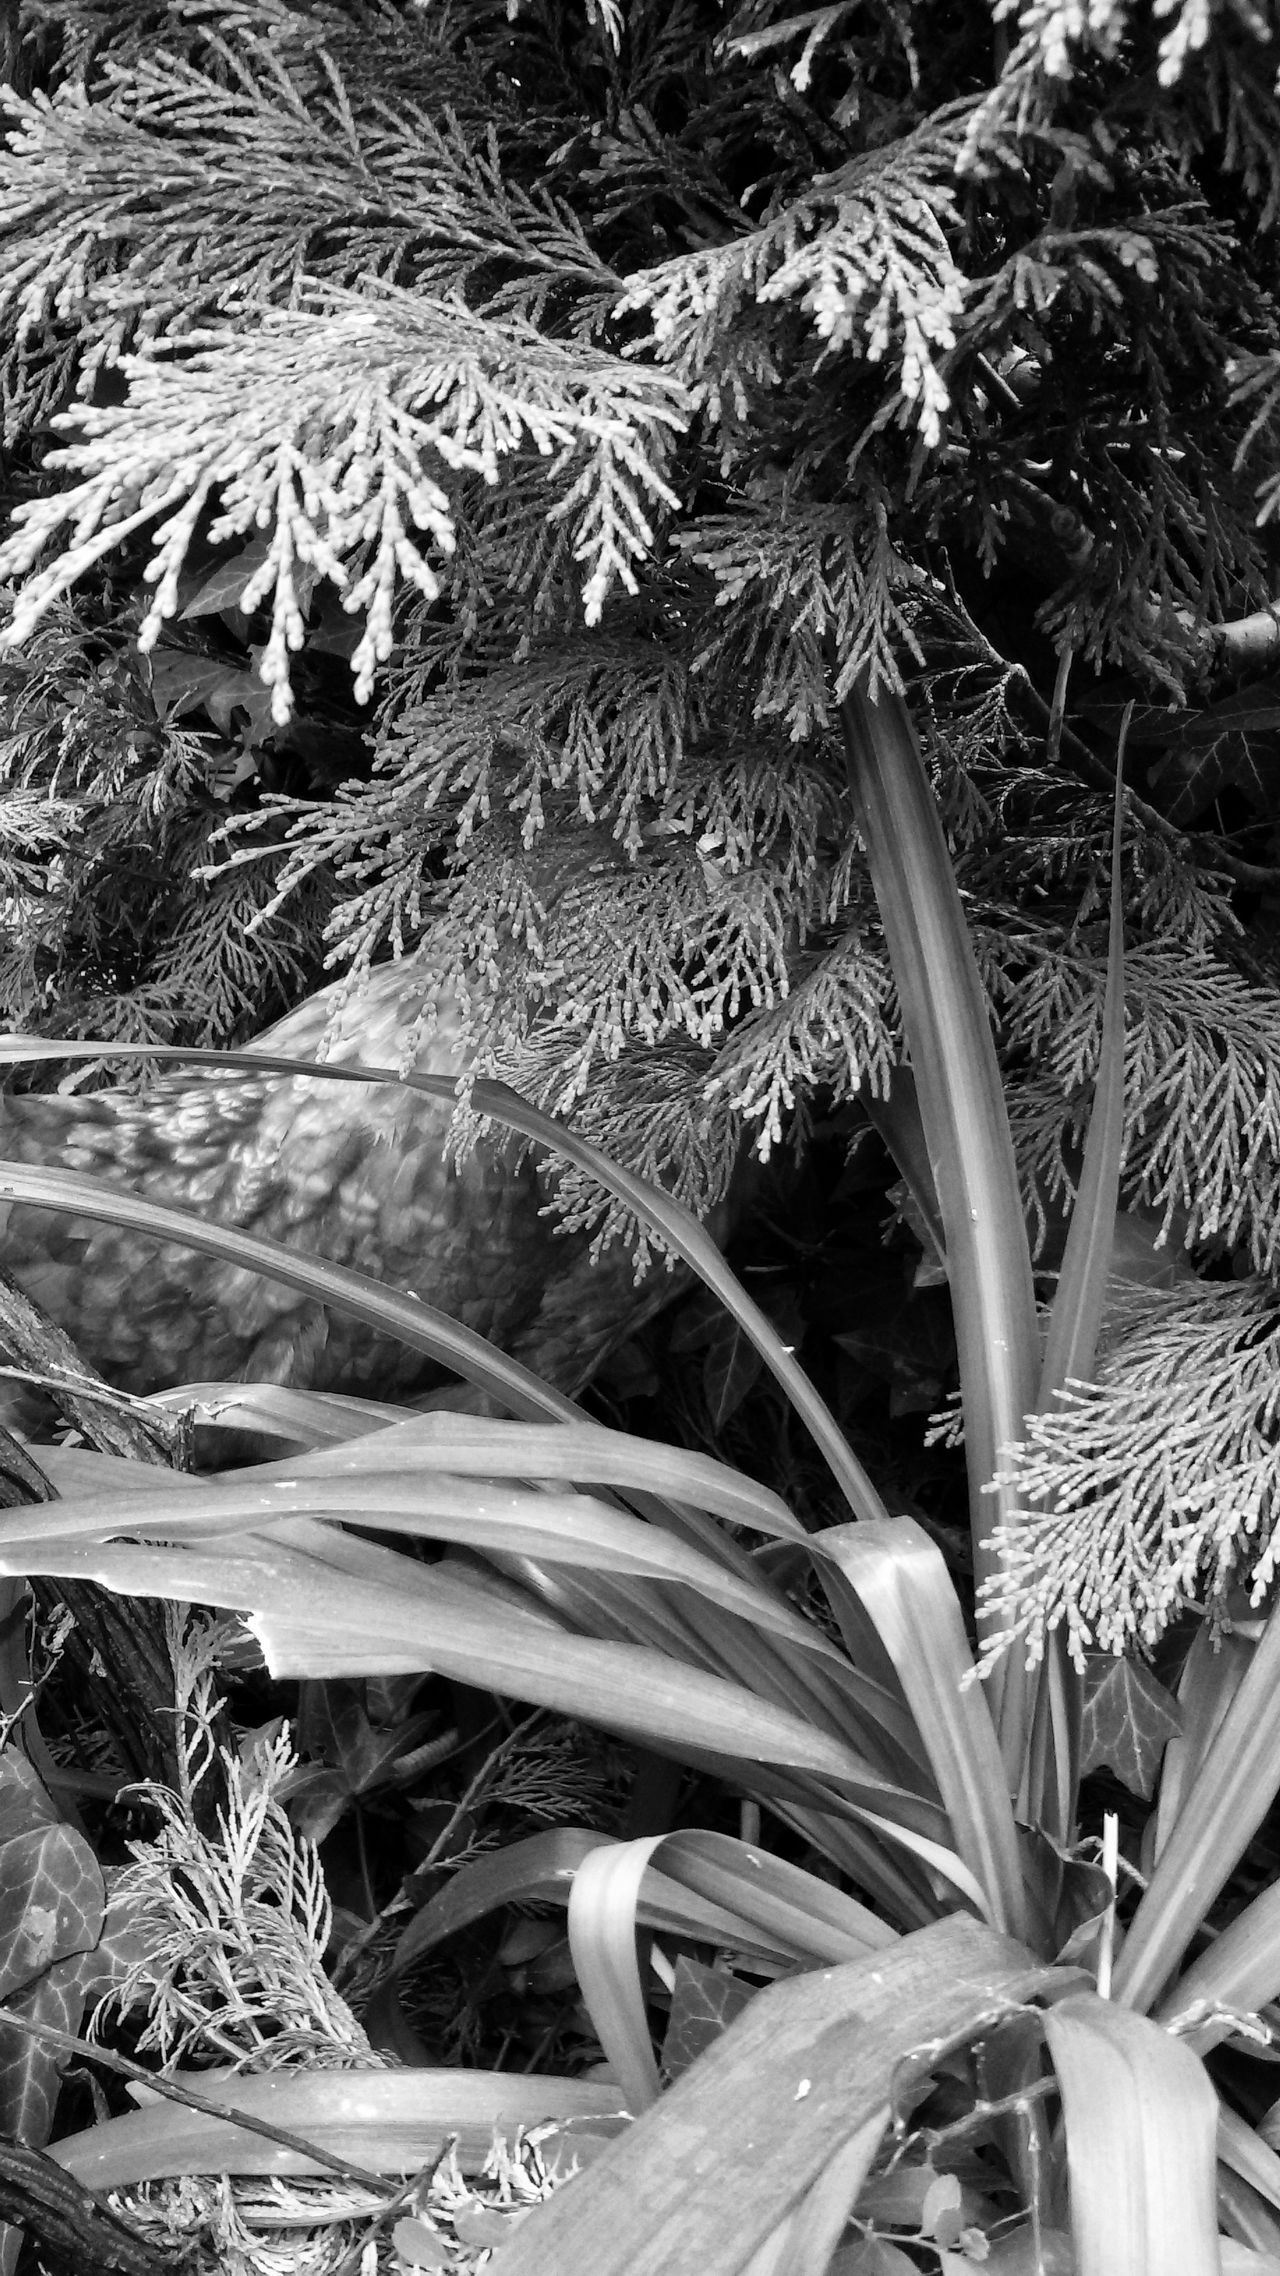 Chicken camouflage :) Vegetation Vegetation Textures Chicken Garden Plants Animal Disguise Camouflage Monochrome Monochromatic Bllack And White Photography